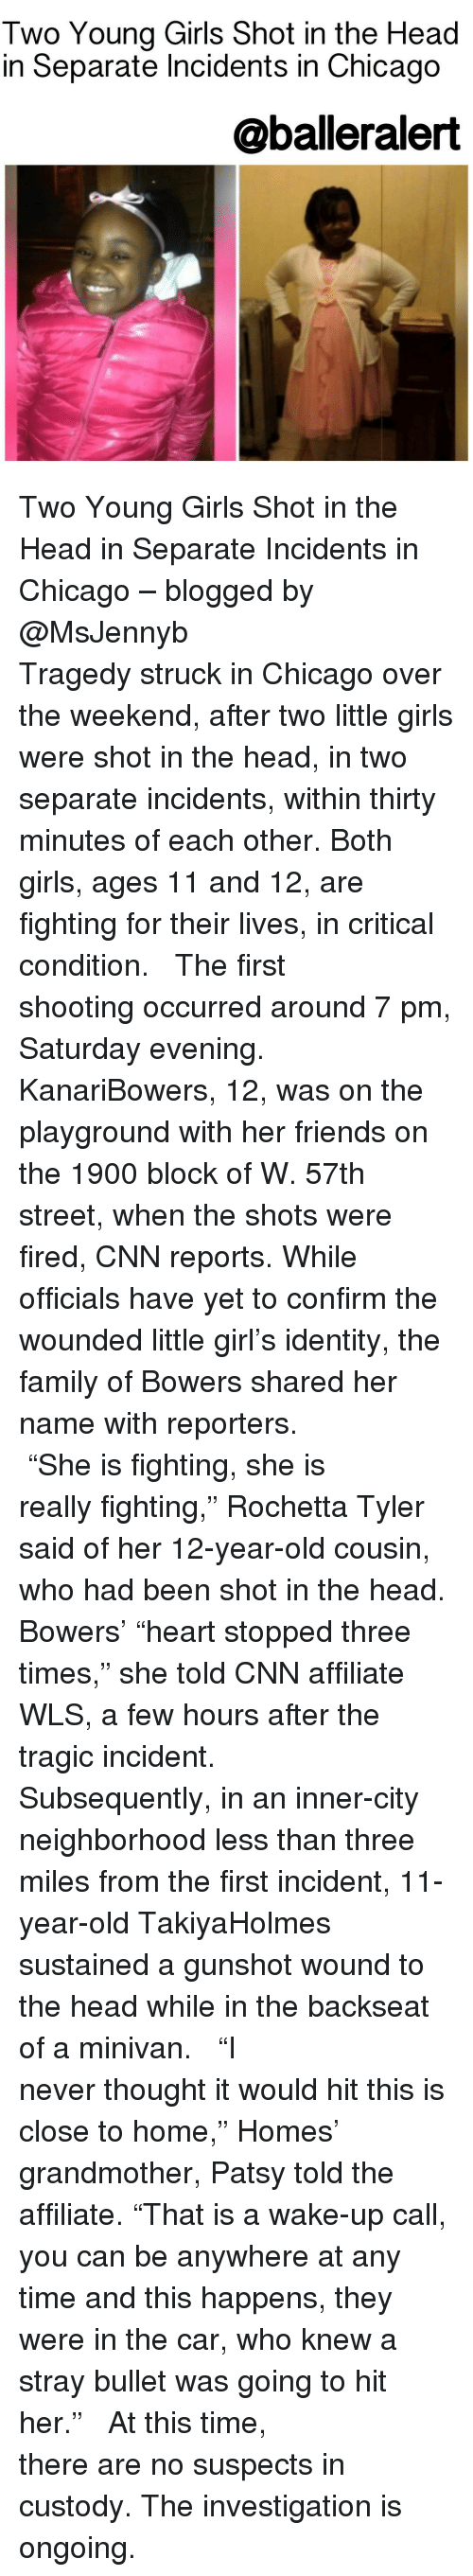 """Baller Alert, Chicago, and Memes: Two Young Girls Shot in the Head  in Separate Incidents in Chicago  @baller alert Two Young Girls Shot in the Head in Separate Incidents in Chicago – blogged by @MsJennyb ⠀⠀⠀⠀⠀⠀⠀⠀⠀ ⠀⠀⠀⠀⠀⠀⠀⠀⠀ Tragedy struck in Chicago over the weekend, after two little girls were shot in the head, in two separate incidents, within thirty minutes of each other. Both girls, ages 11 and 12, are fighting for their lives, in critical condition. ⠀⠀⠀⠀⠀⠀⠀⠀⠀ ⠀⠀⠀⠀⠀⠀⠀⠀⠀ The first shooting occurred around 7 pm, Saturday evening. KanariBowers, 12, was on the playground with her friends on the 1900 block of W. 57th street, when the shots were fired, CNN reports. While officials have yet to confirm the wounded little girl's identity, the family of Bowers shared her name with reporters. ⠀⠀⠀⠀⠀⠀⠀⠀⠀ ⠀⠀⠀⠀⠀⠀⠀⠀⠀ """"She is fighting, she is really fighting,"""" Rochetta Tyler said of her 12-year-old cousin, who had been shot in the head. Bowers' """"heart stopped three times,"""" she told CNN affiliate WLS, a few hours after the tragic incident. ⠀⠀⠀⠀⠀⠀⠀⠀⠀ ⠀⠀⠀⠀⠀⠀⠀⠀⠀ Subsequently, in an inner-city neighborhood less than three miles from the first incident, 11-year-old TakiyaHolmes sustained a gunshot wound to the head while in the backseat of a minivan. ⠀⠀⠀⠀⠀⠀⠀⠀⠀ ⠀⠀⠀⠀⠀⠀⠀⠀⠀ """"I never thought it would hit this is close to home,"""" Homes' grandmother, Patsy told the affiliate. """"That is a wake-up call, you can be anywhere at any time and this happens, they were in the car, who knew a stray bullet was going to hit her."""" ⠀⠀⠀⠀⠀⠀⠀⠀⠀ ⠀⠀⠀⠀⠀⠀⠀⠀⠀ At this time, there are no suspects in custody. The investigation is ongoing."""